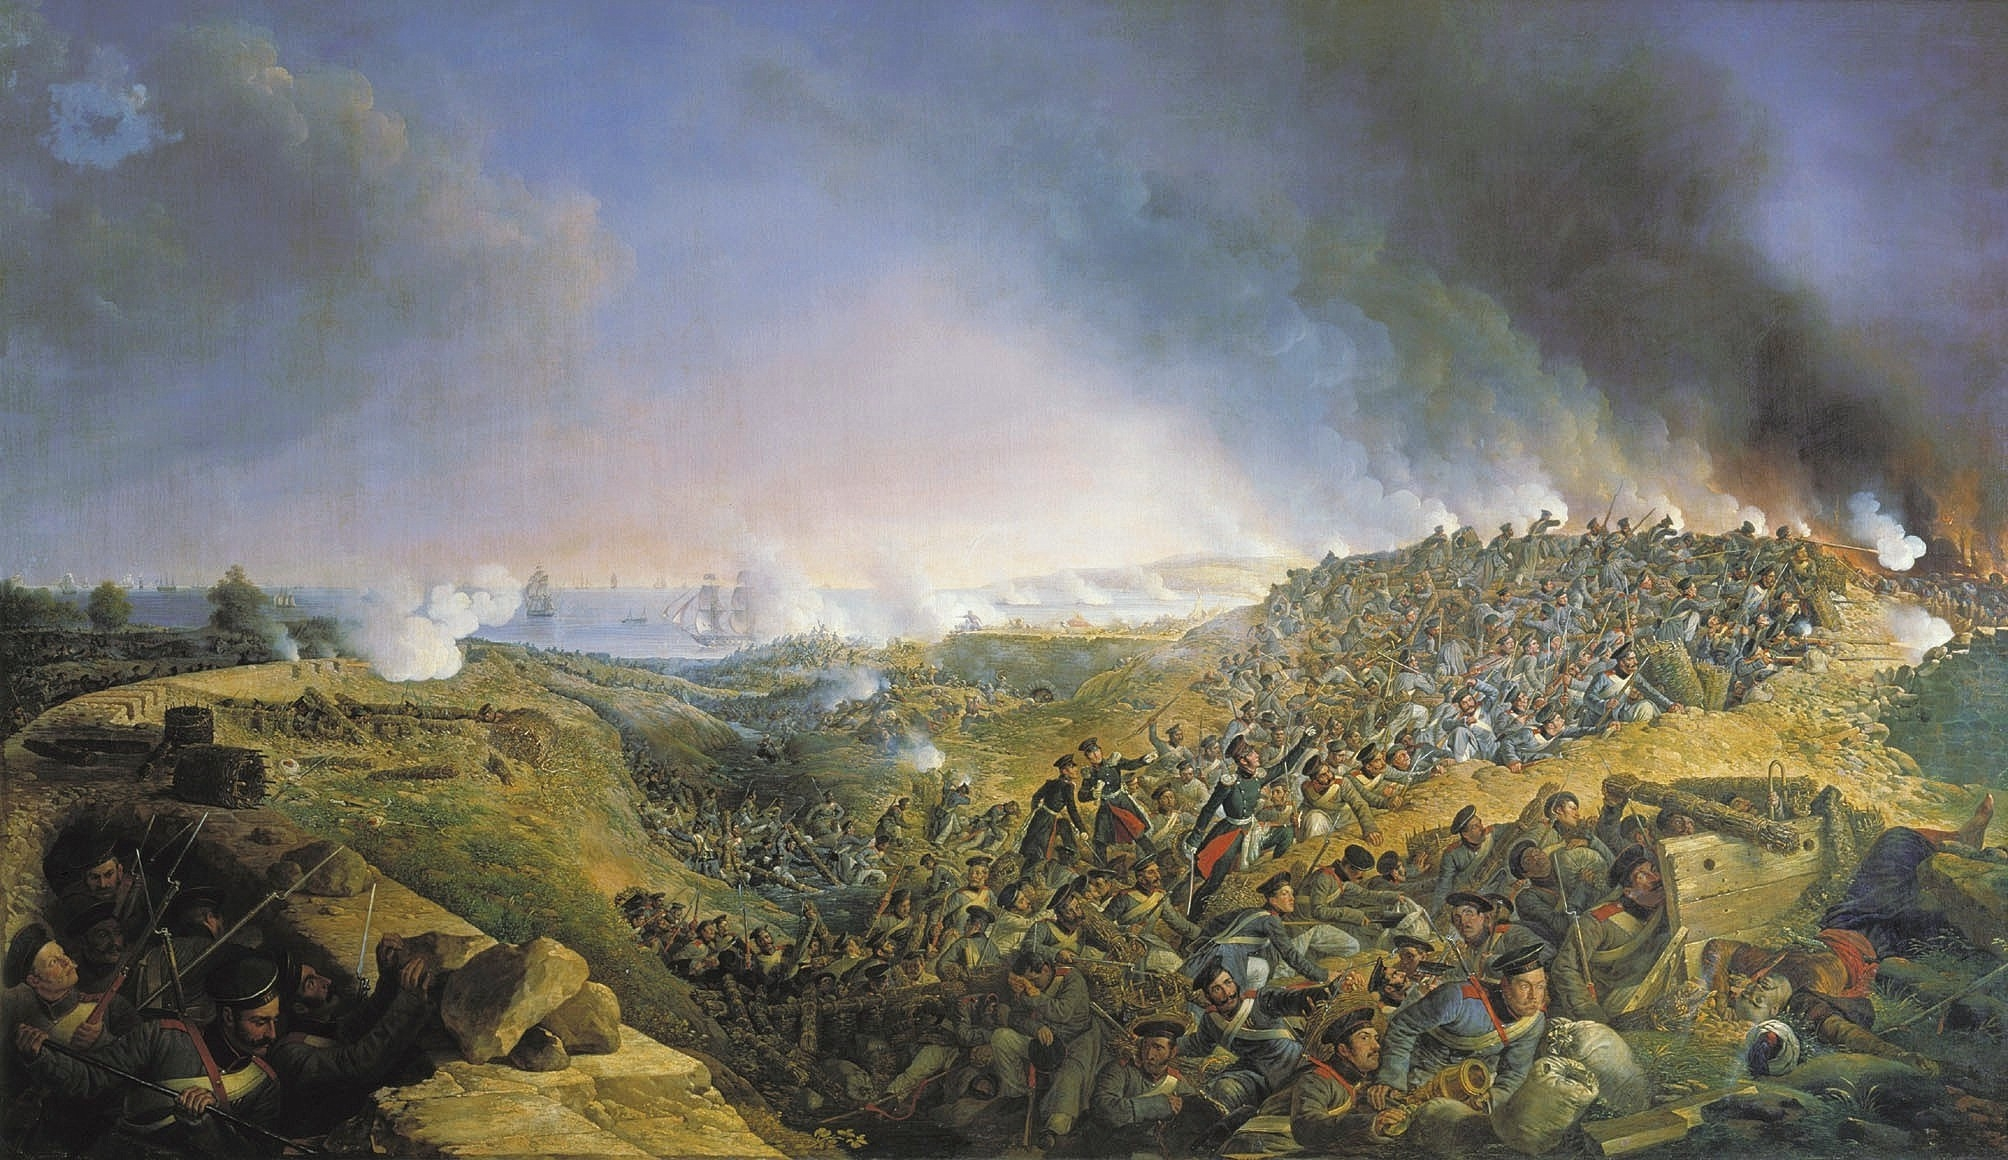 File:Siege of Varna 1828.jpg